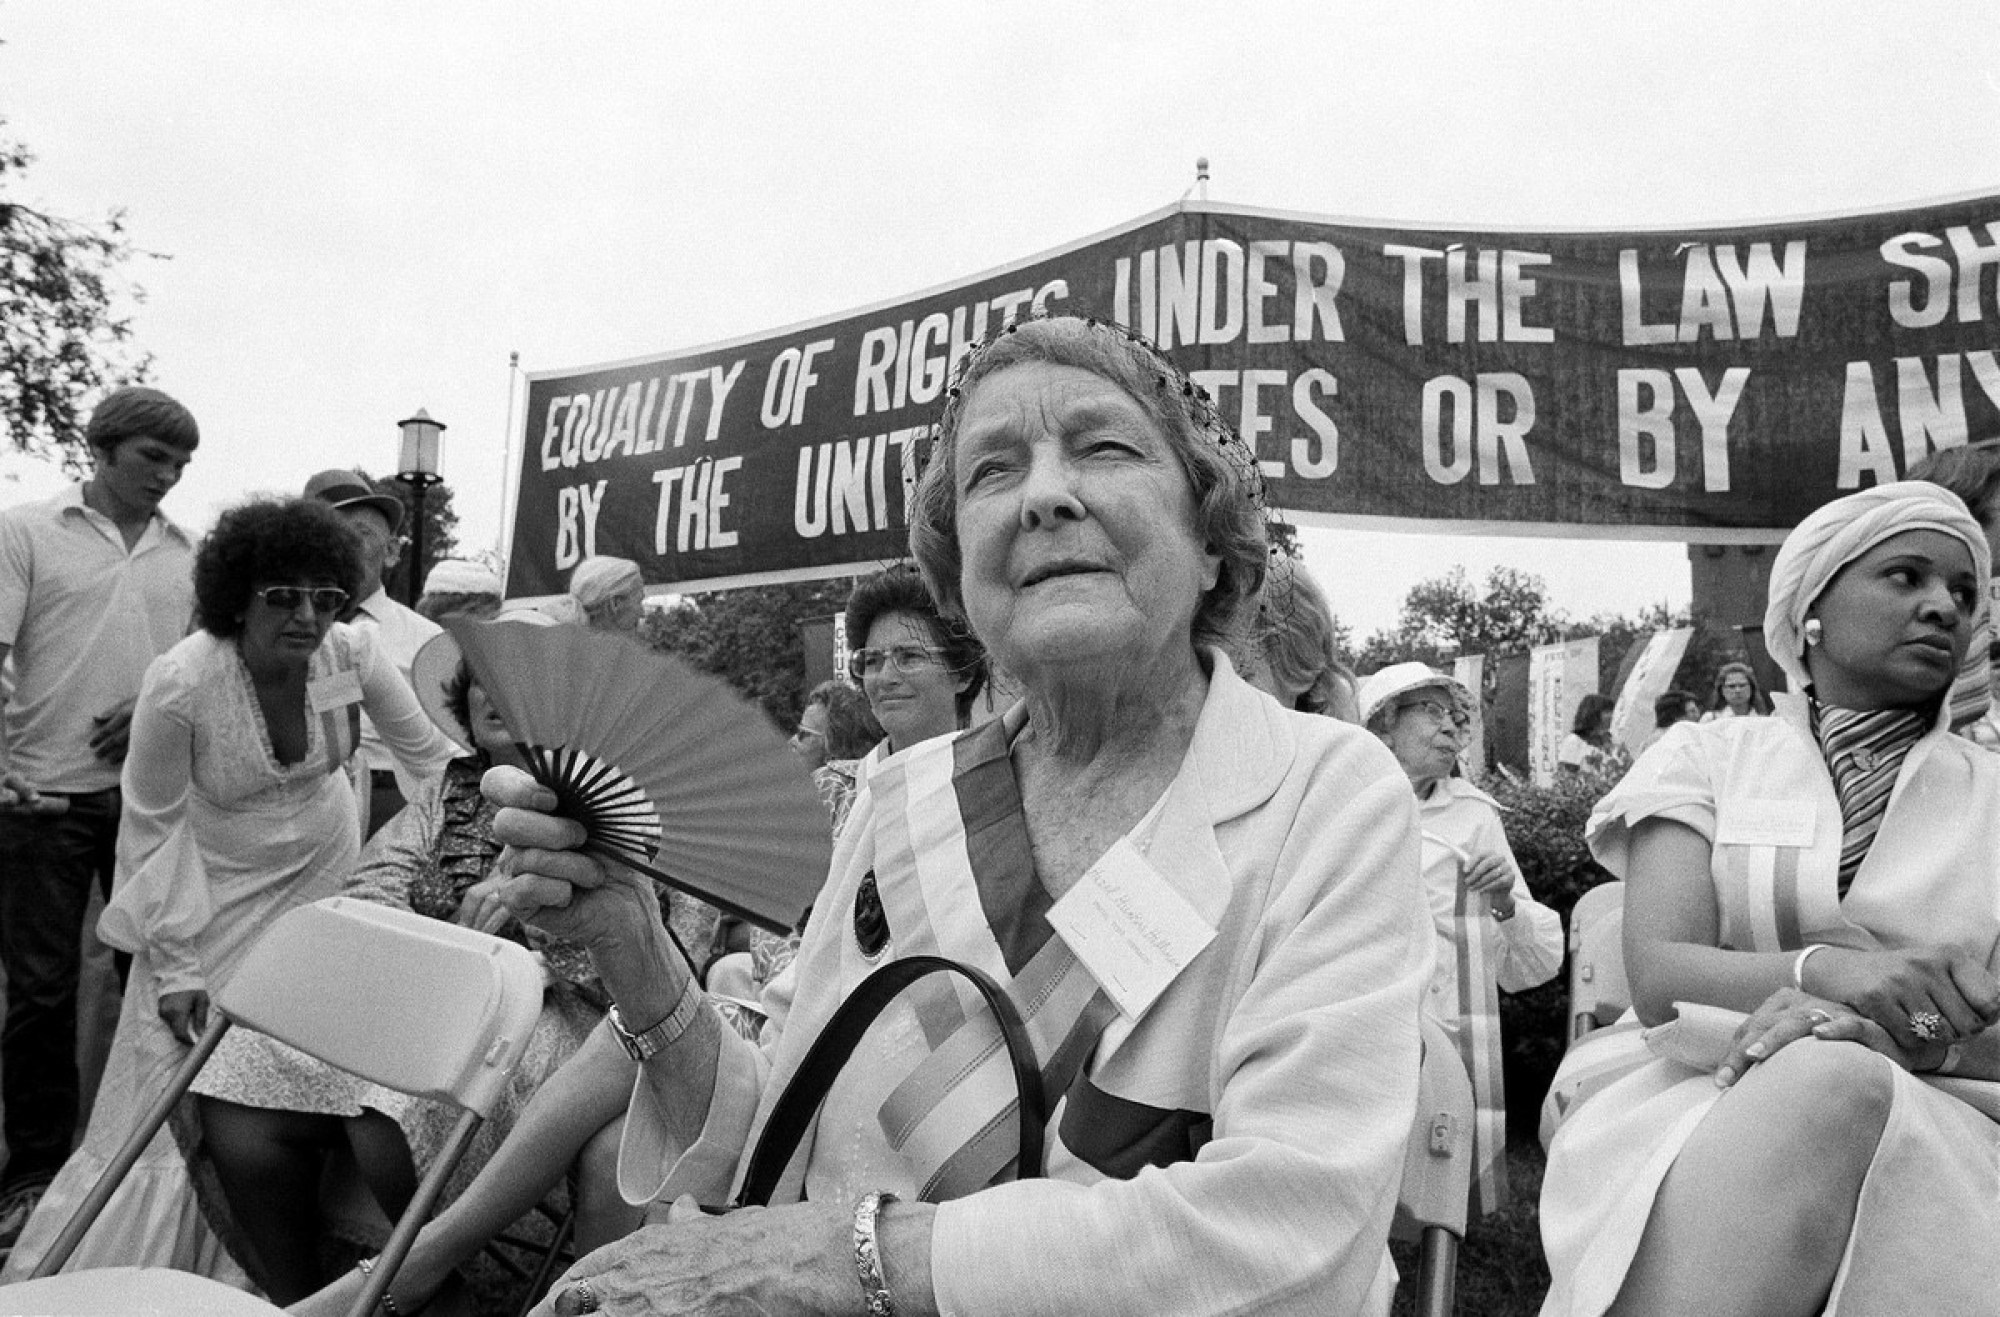 Hazel Hunkines Hallinnan, one of the original suffragists, rests after marching with supporters of the Equal Rights Amendment on Washington's Pennsylvania Avenue. Thousands of women participated in the march which coincided with the 57th anniversary of women's suffrage - August 26, 1977 (AP File Photo)